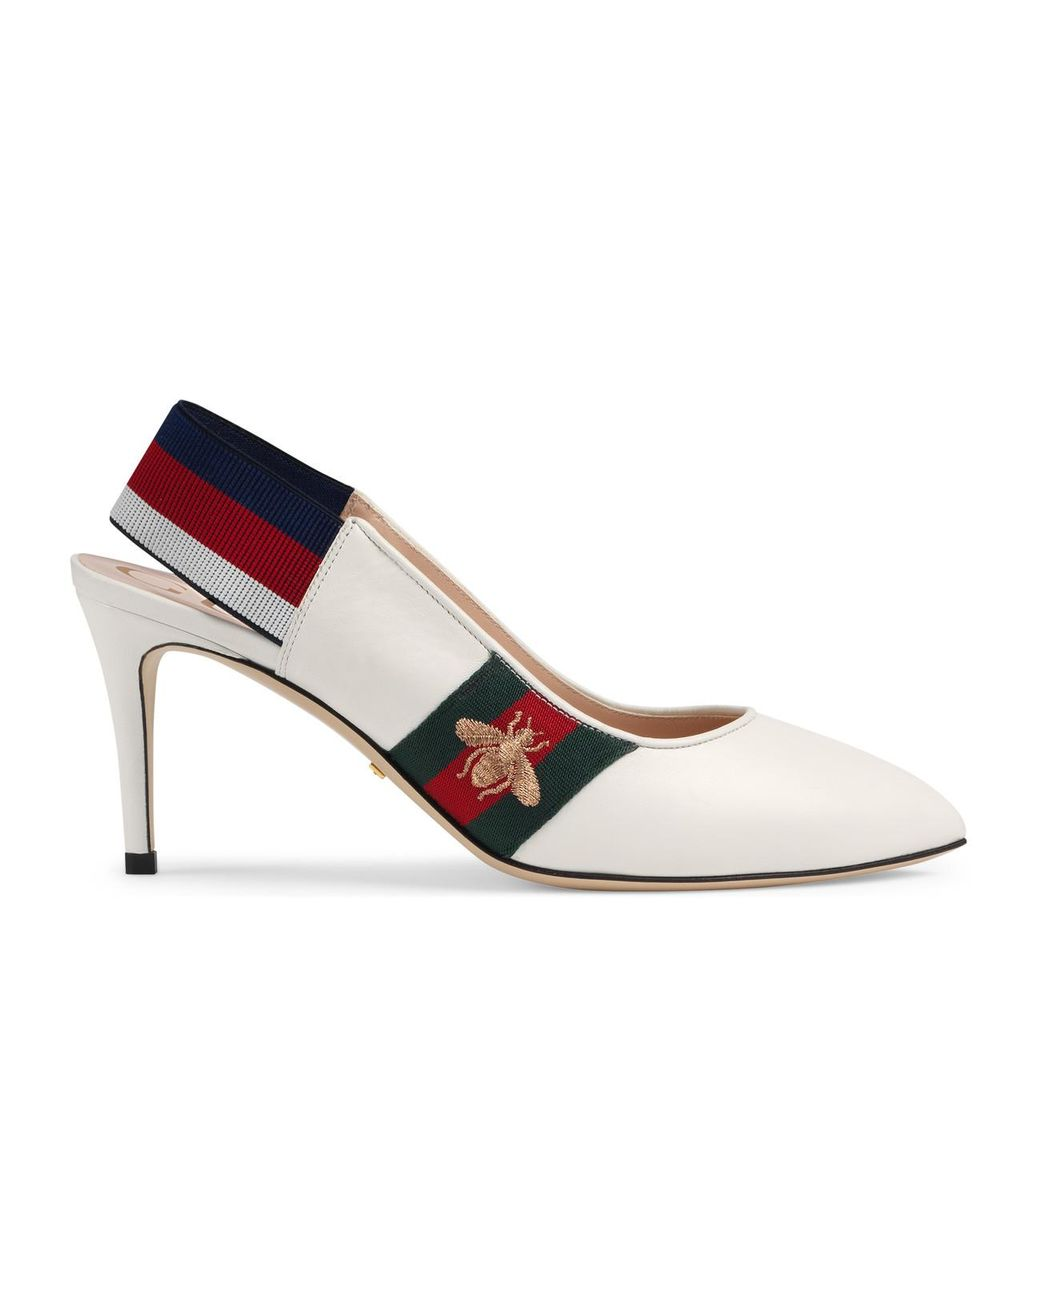 658e47ee82f Lyst - Gucci Leather Web Mid-heel Slingback Pump in White - Save 10%